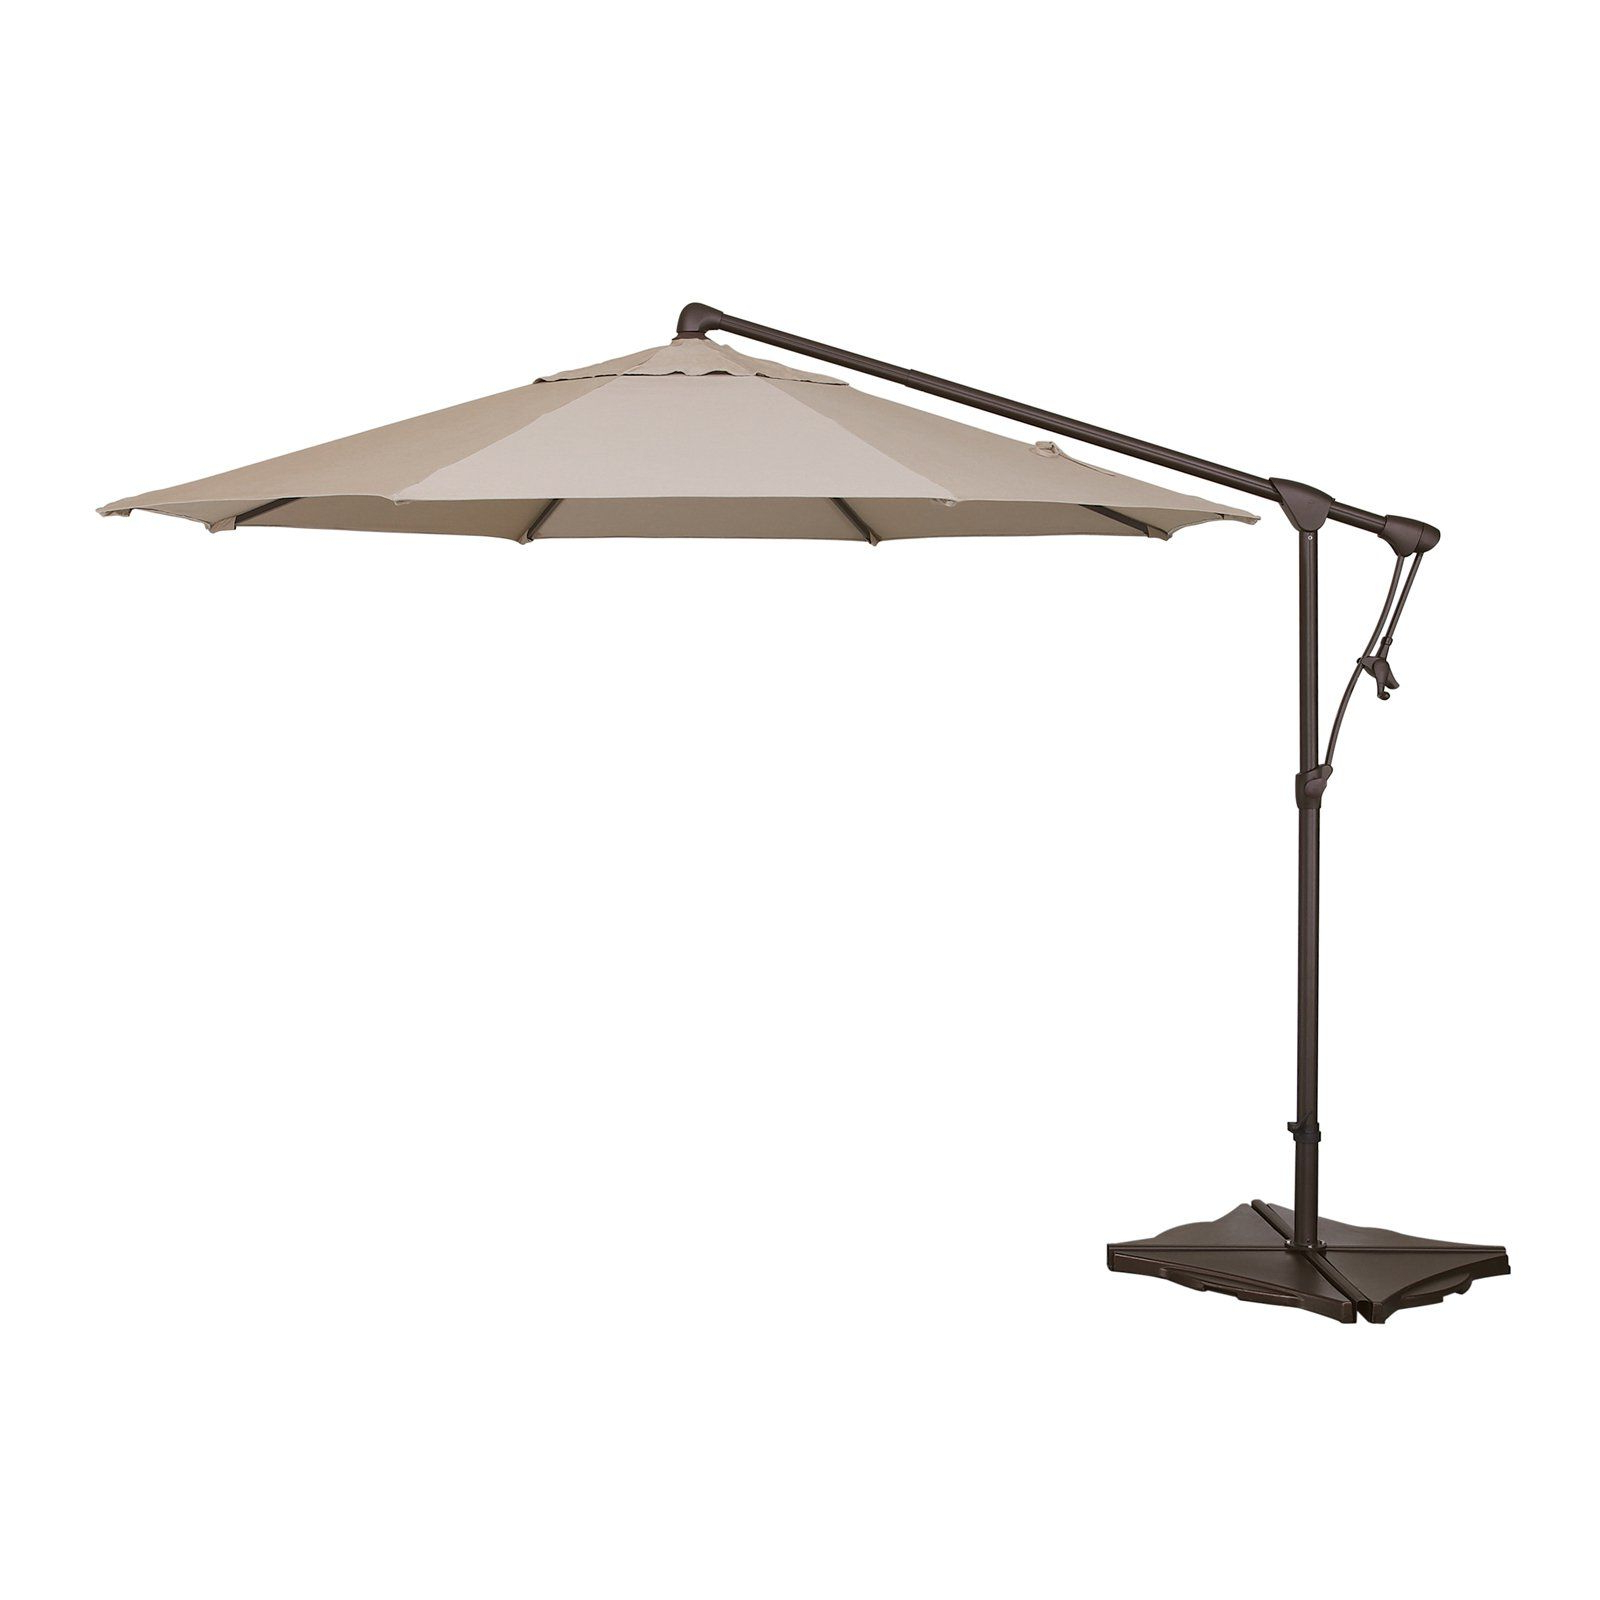 Bayside Series Cantilever Umbrellas Regarding Most Recently Released Treasure Garden 10 Ft. Sunbrella Offset Patio Umbrella Antique Beige (Gallery 12 of 20)